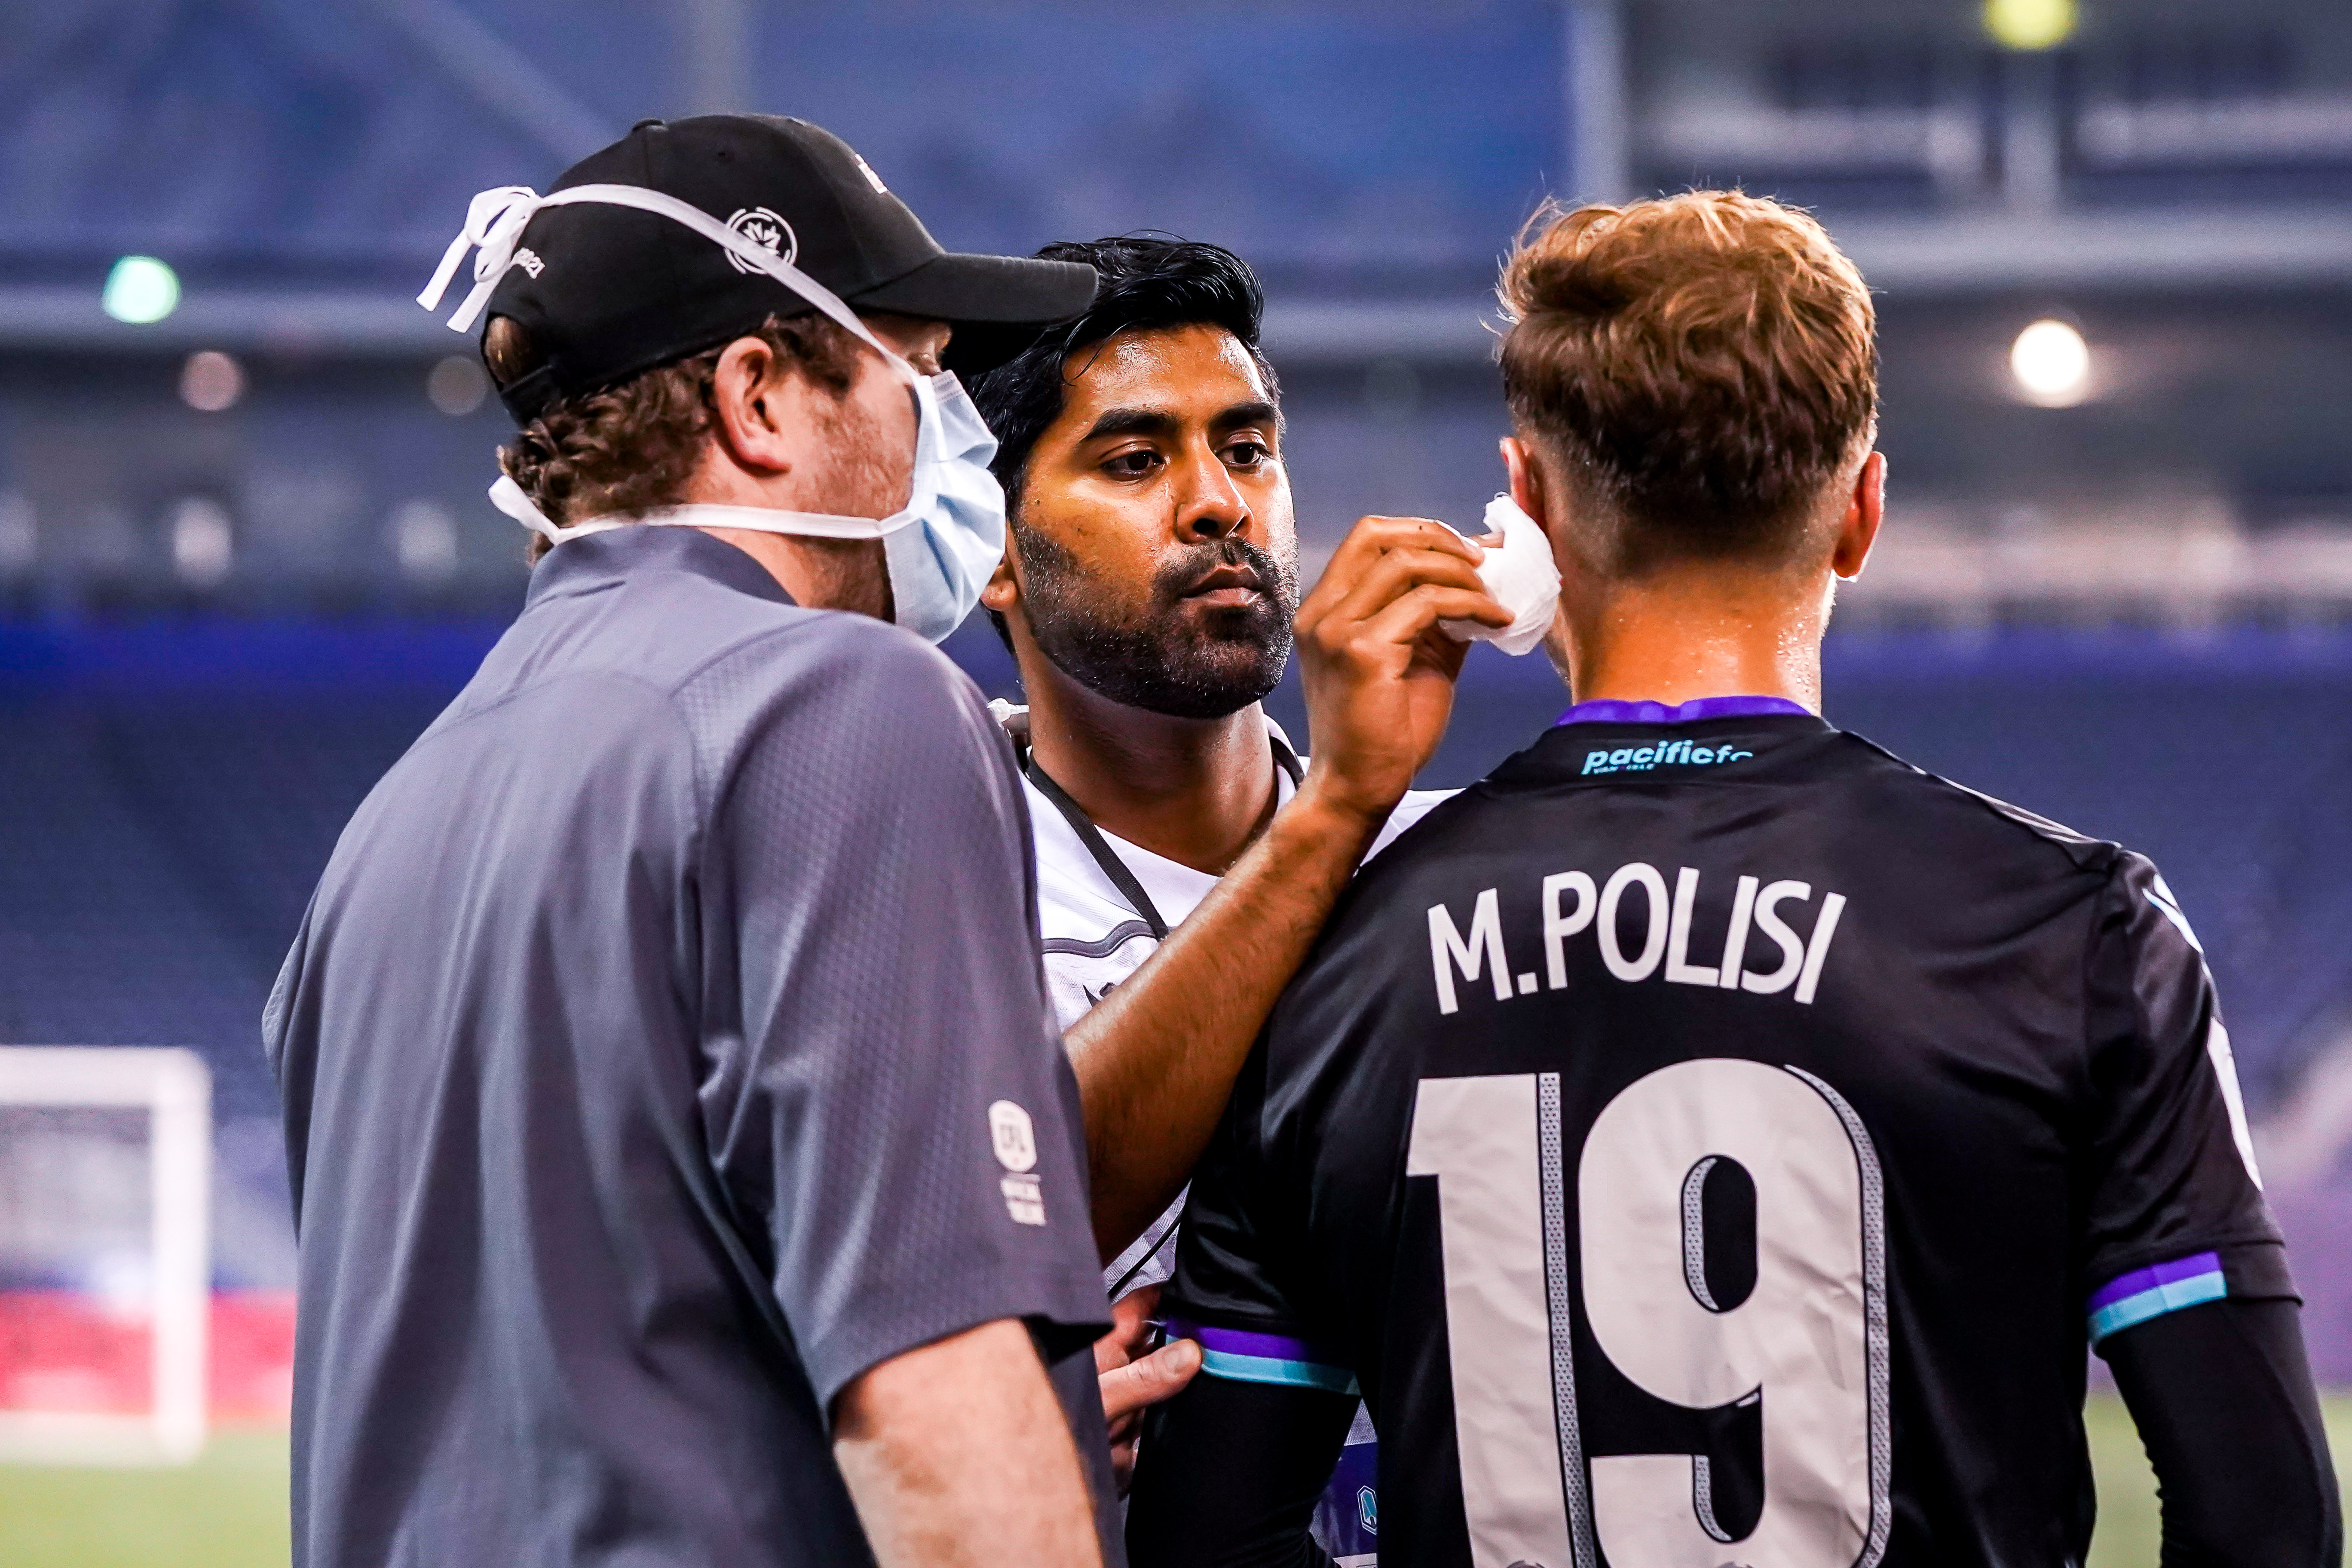 July 21, 2021. Pacific FC vs Atlético Ottawa. First-Half. Matteo Polisi of Pacific FC gets attended to by the Pacific FC physio team.